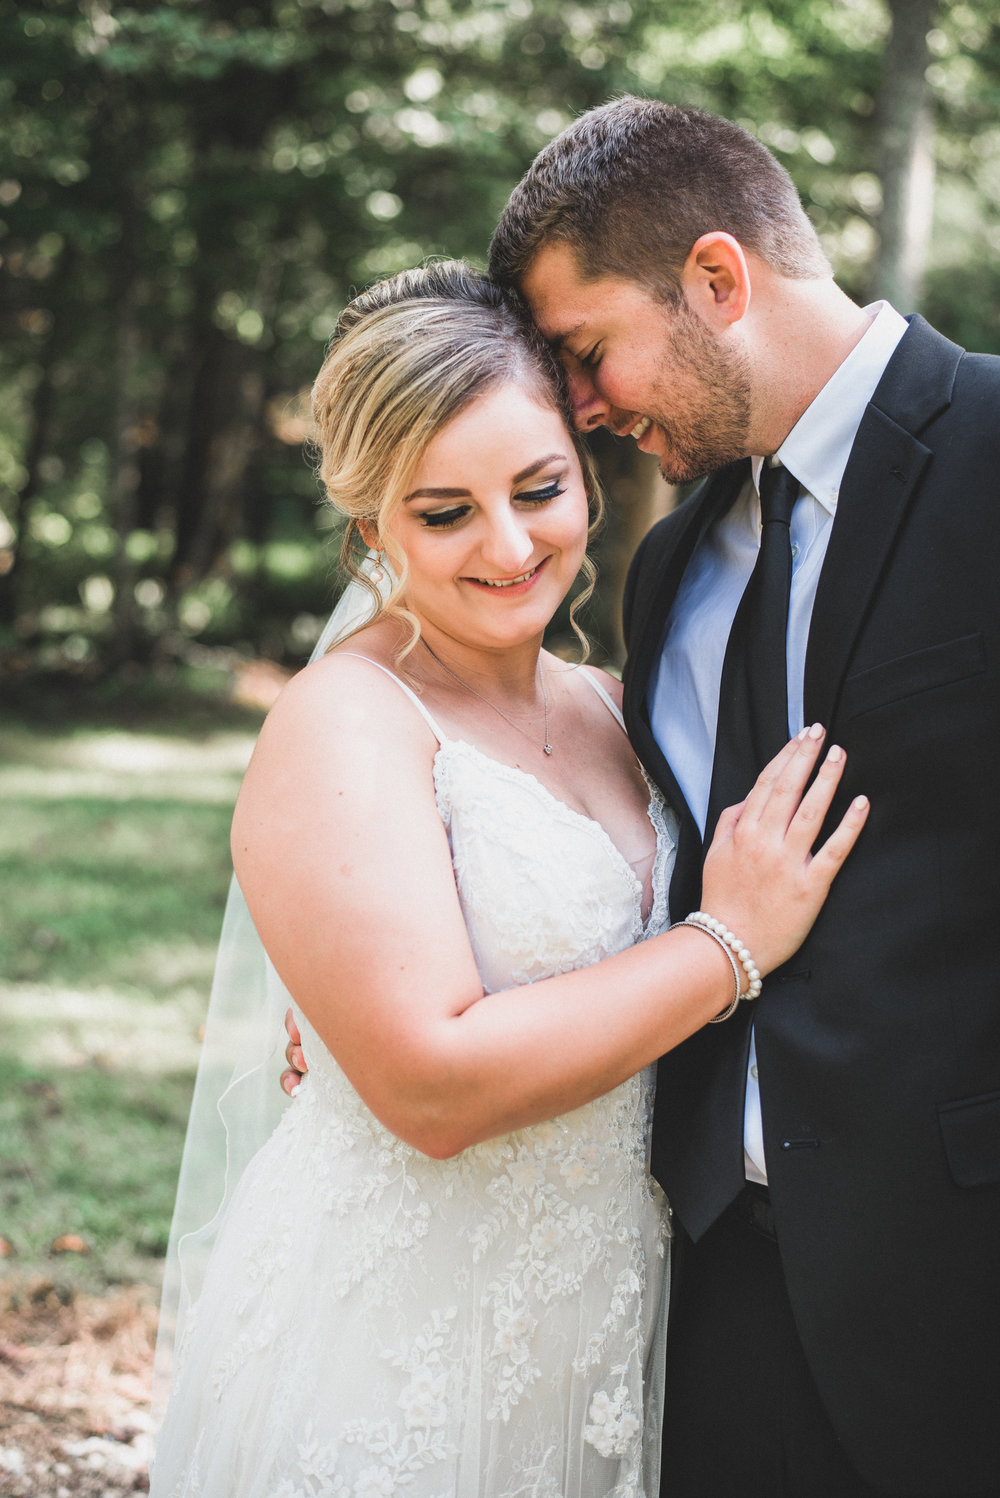 Chelsea & Adam - Sarah is phenomenal! She did our engagement photos, my bridal portraits, and our wedding! She takes amazing photos and is super sweet and professional. We will be using her for any professional photos we need in the future.